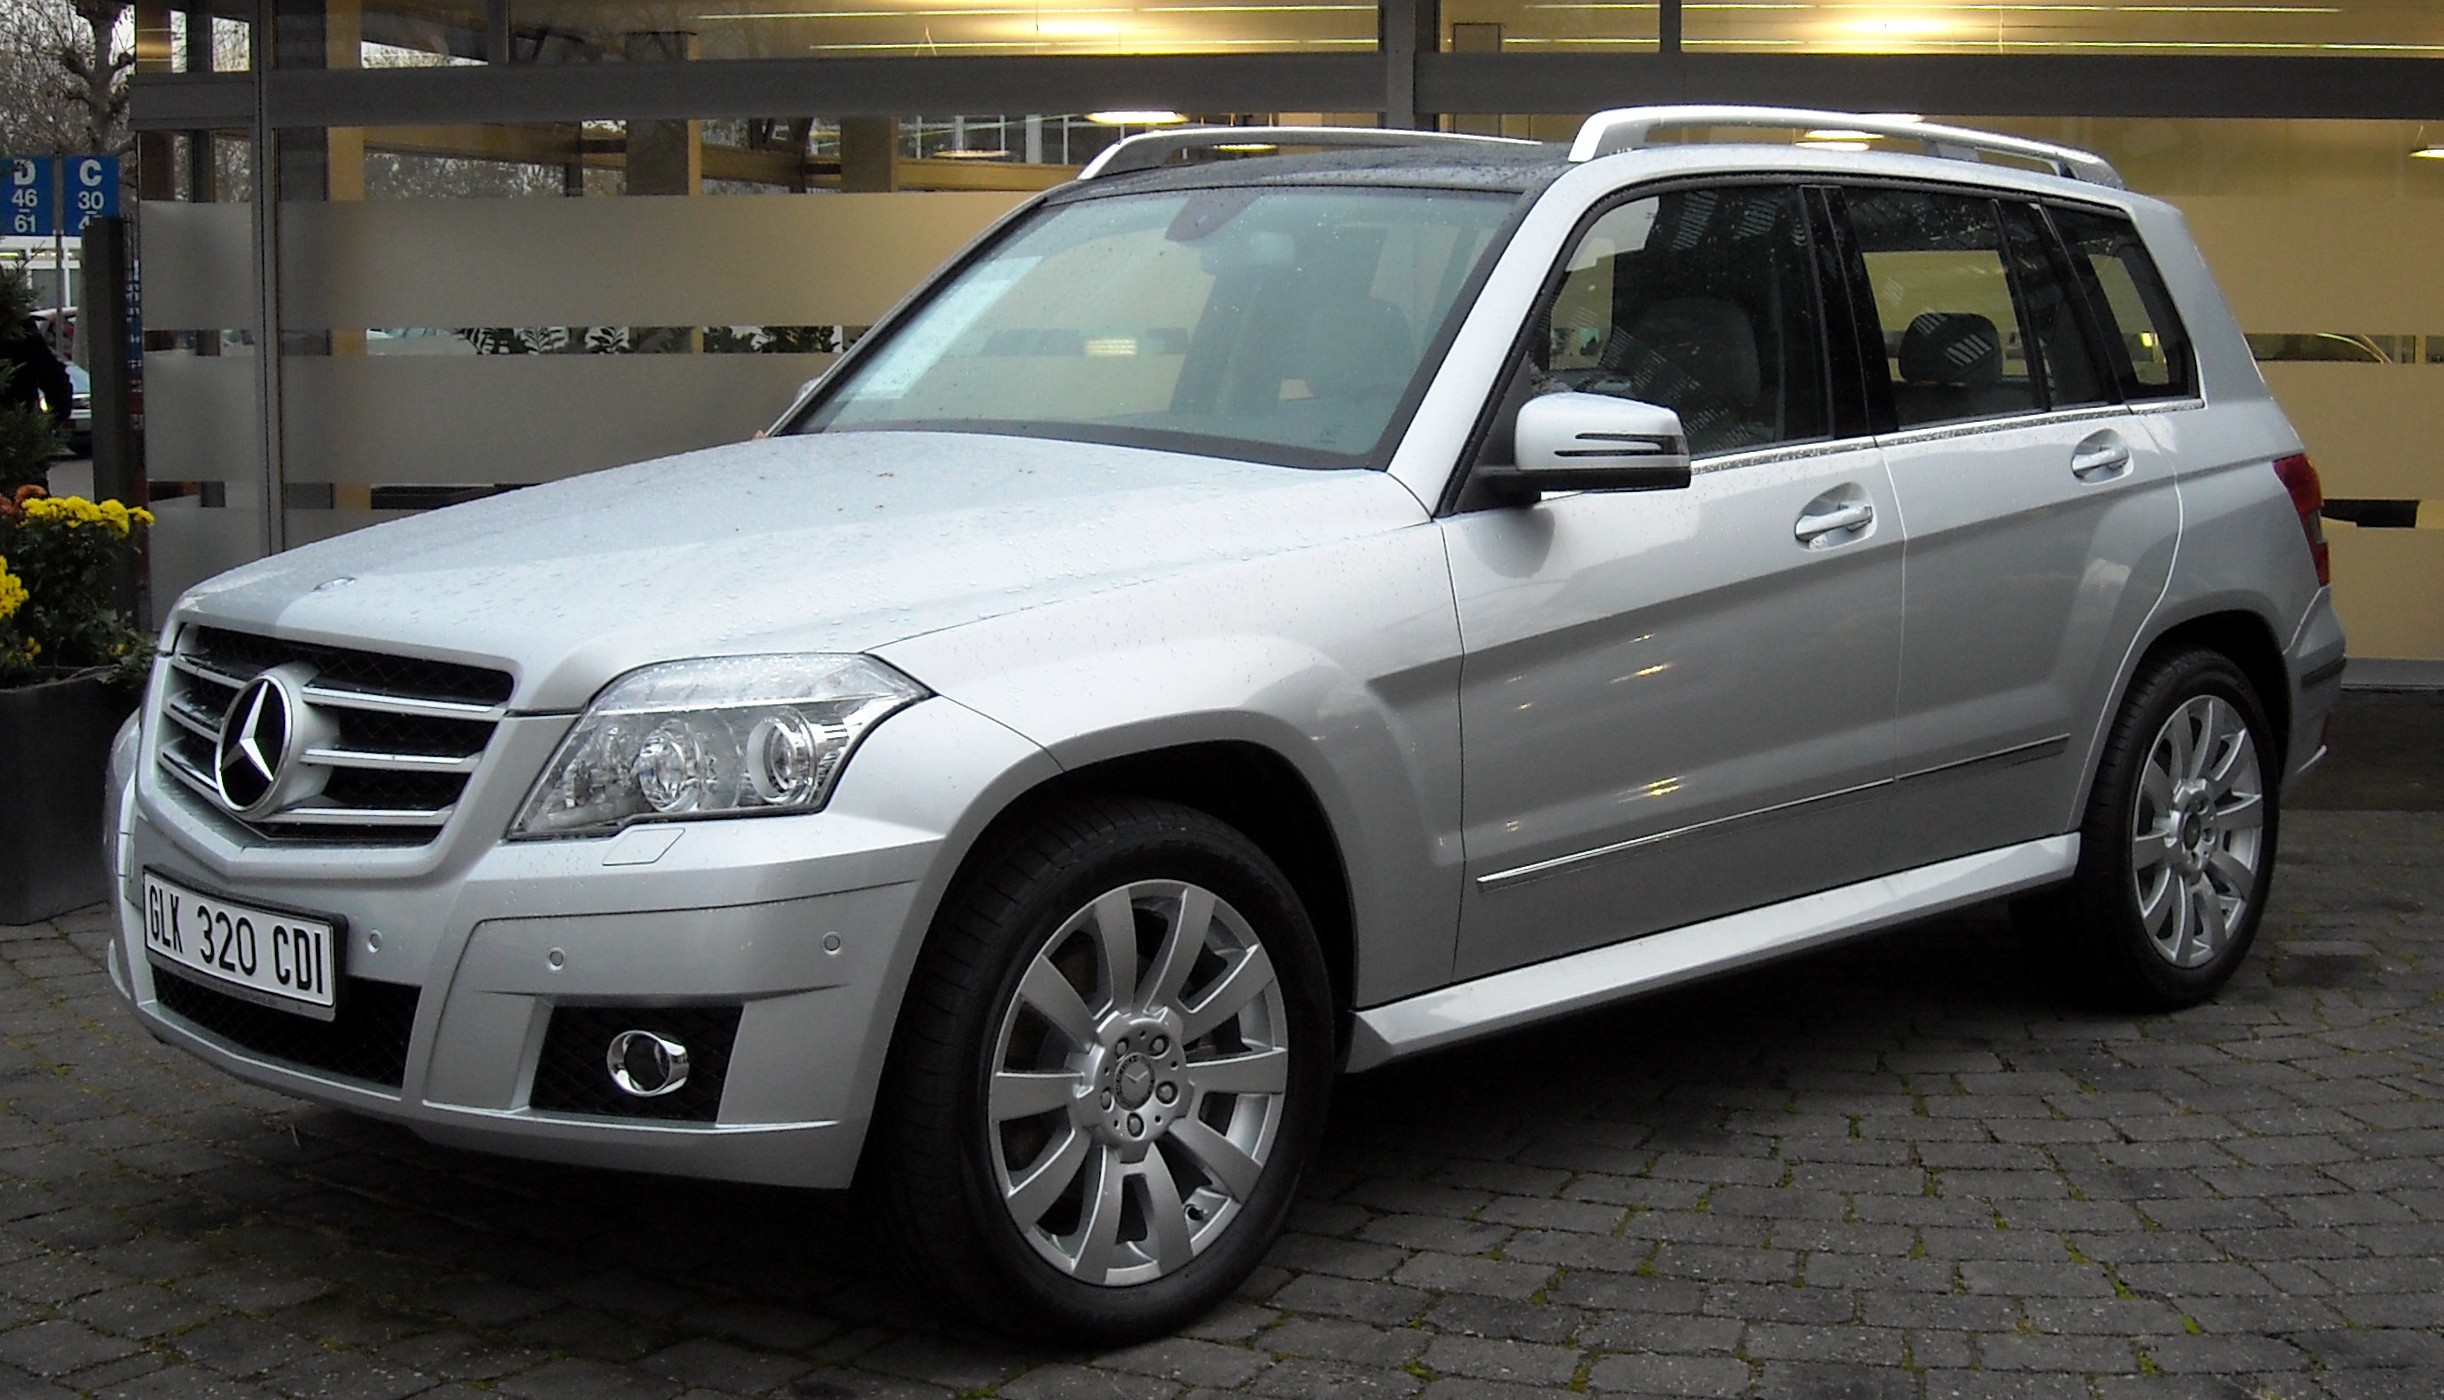 mercedes benz glk luxury crossover suv review